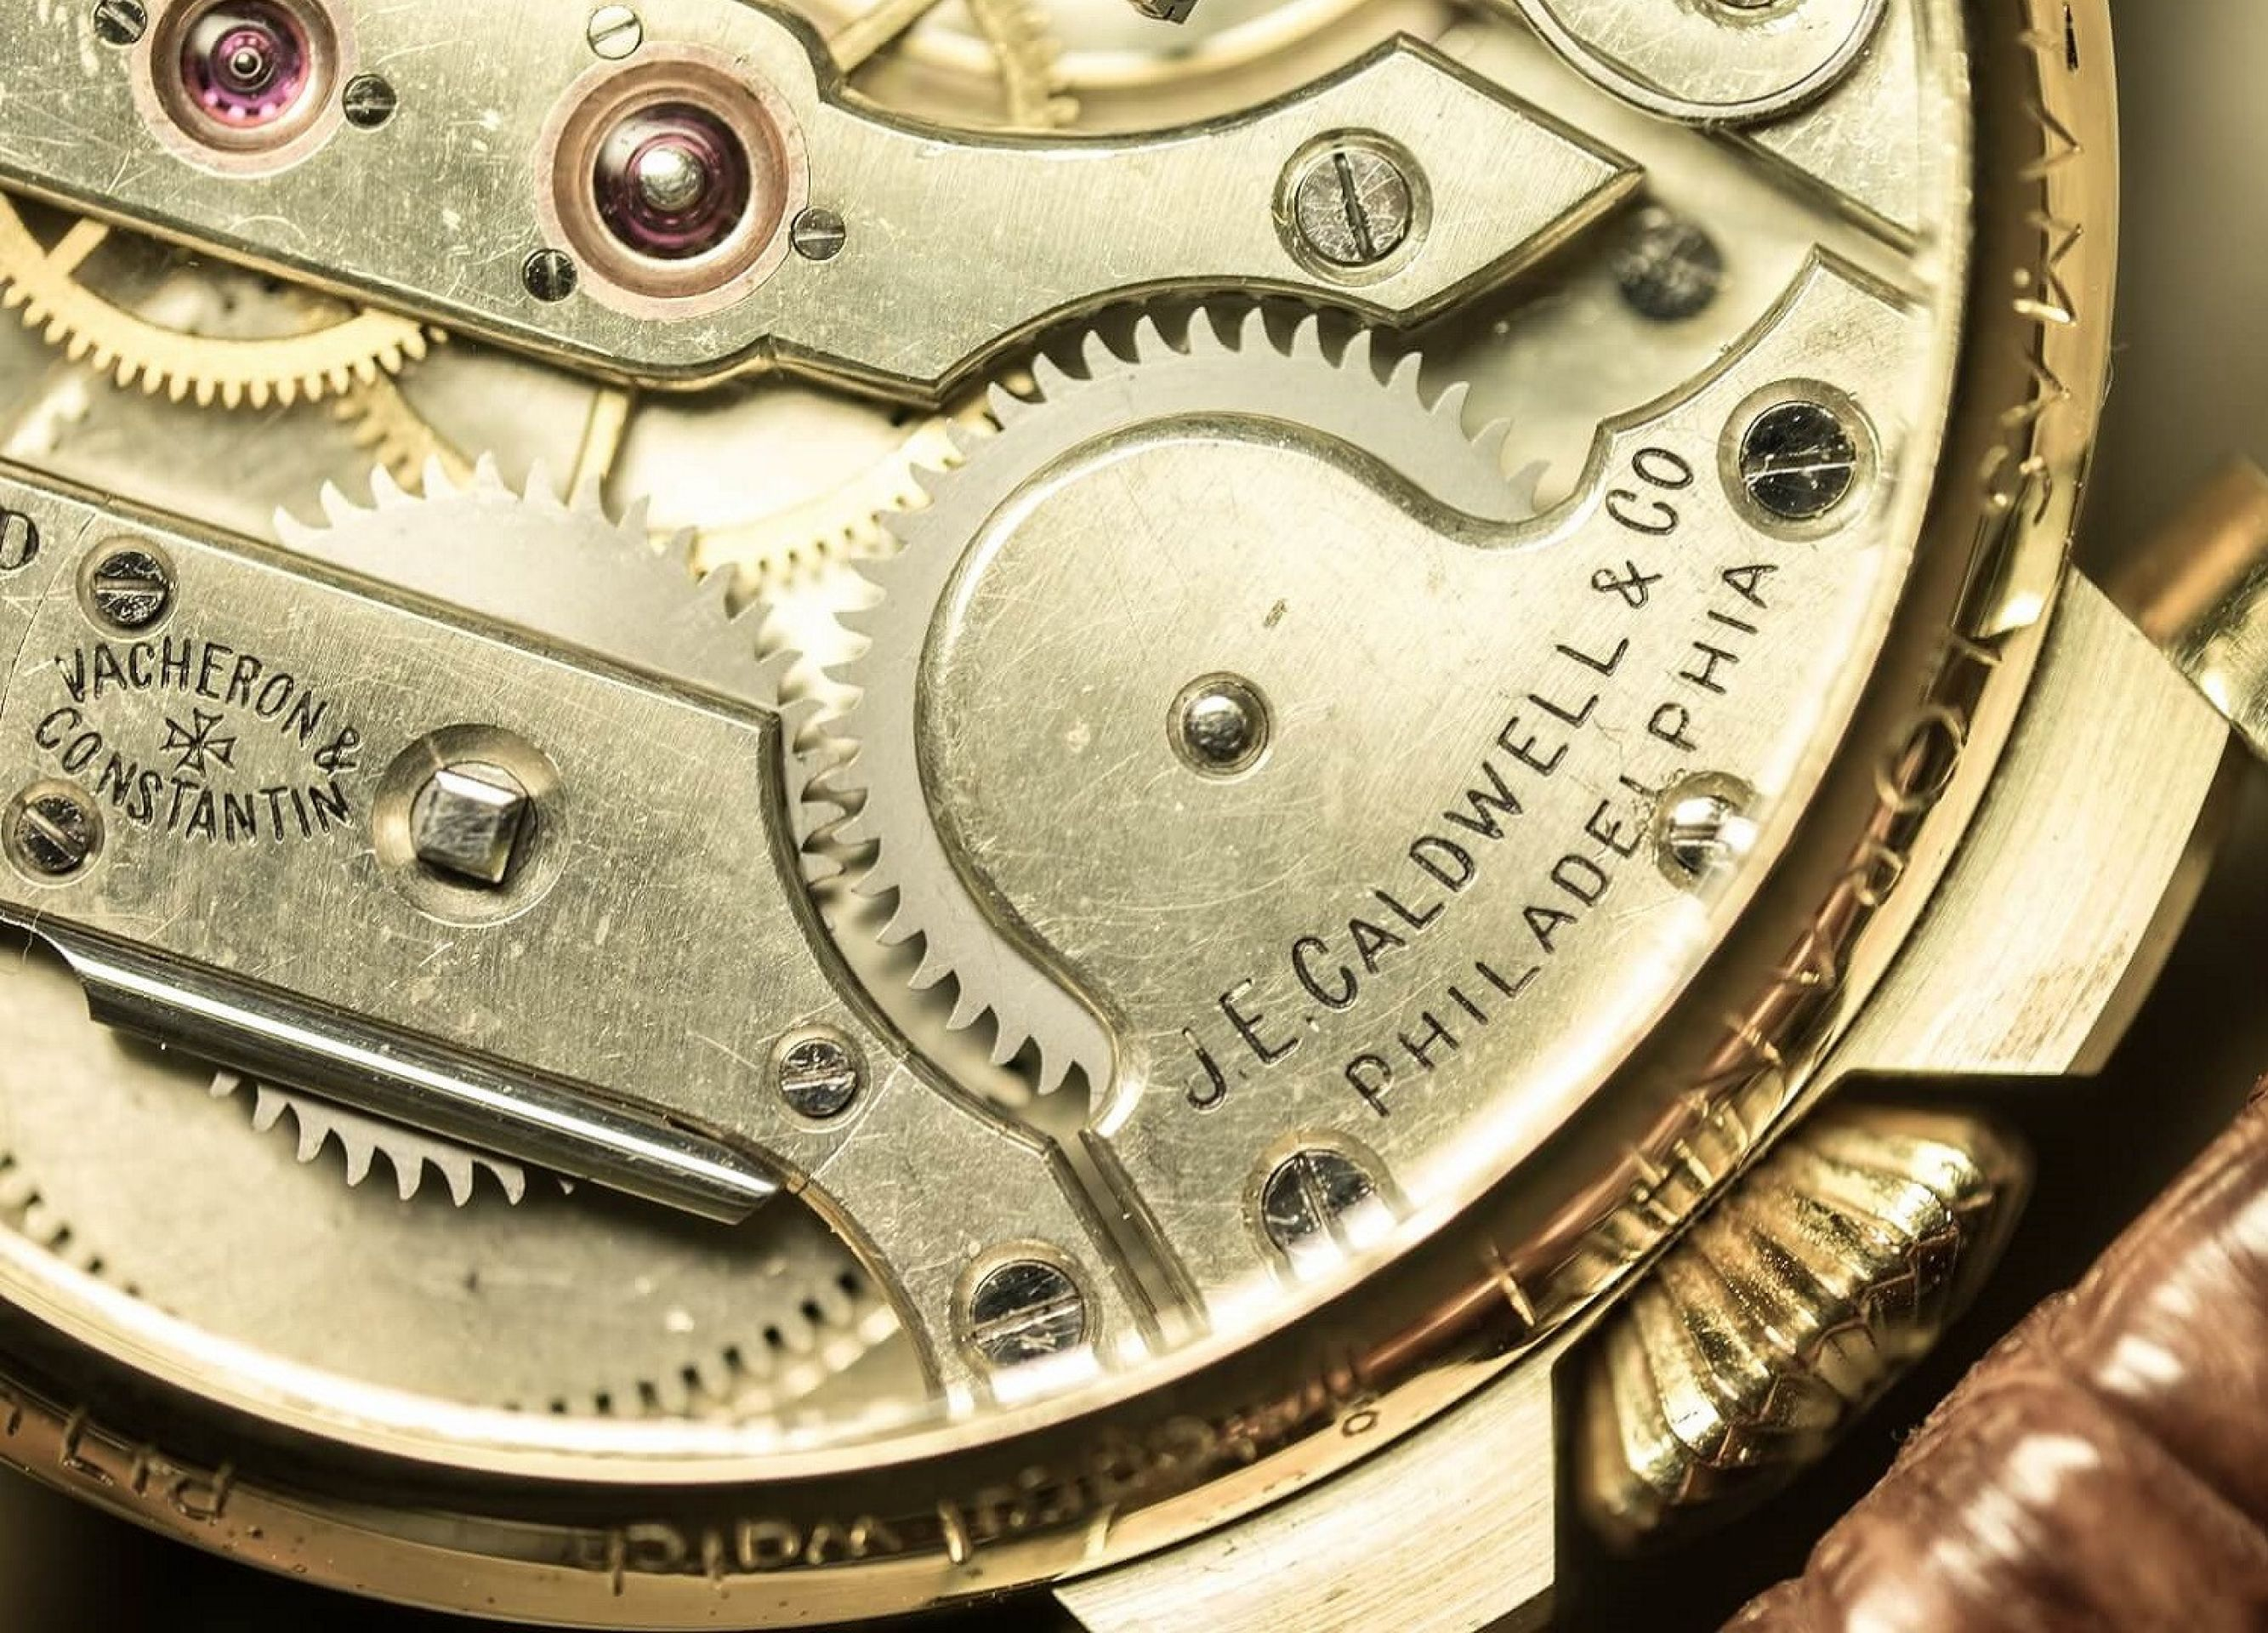 TAMAS  L'ORANT Movement No: 317837 - Mechanism: Vacheron Constantin ~1907~